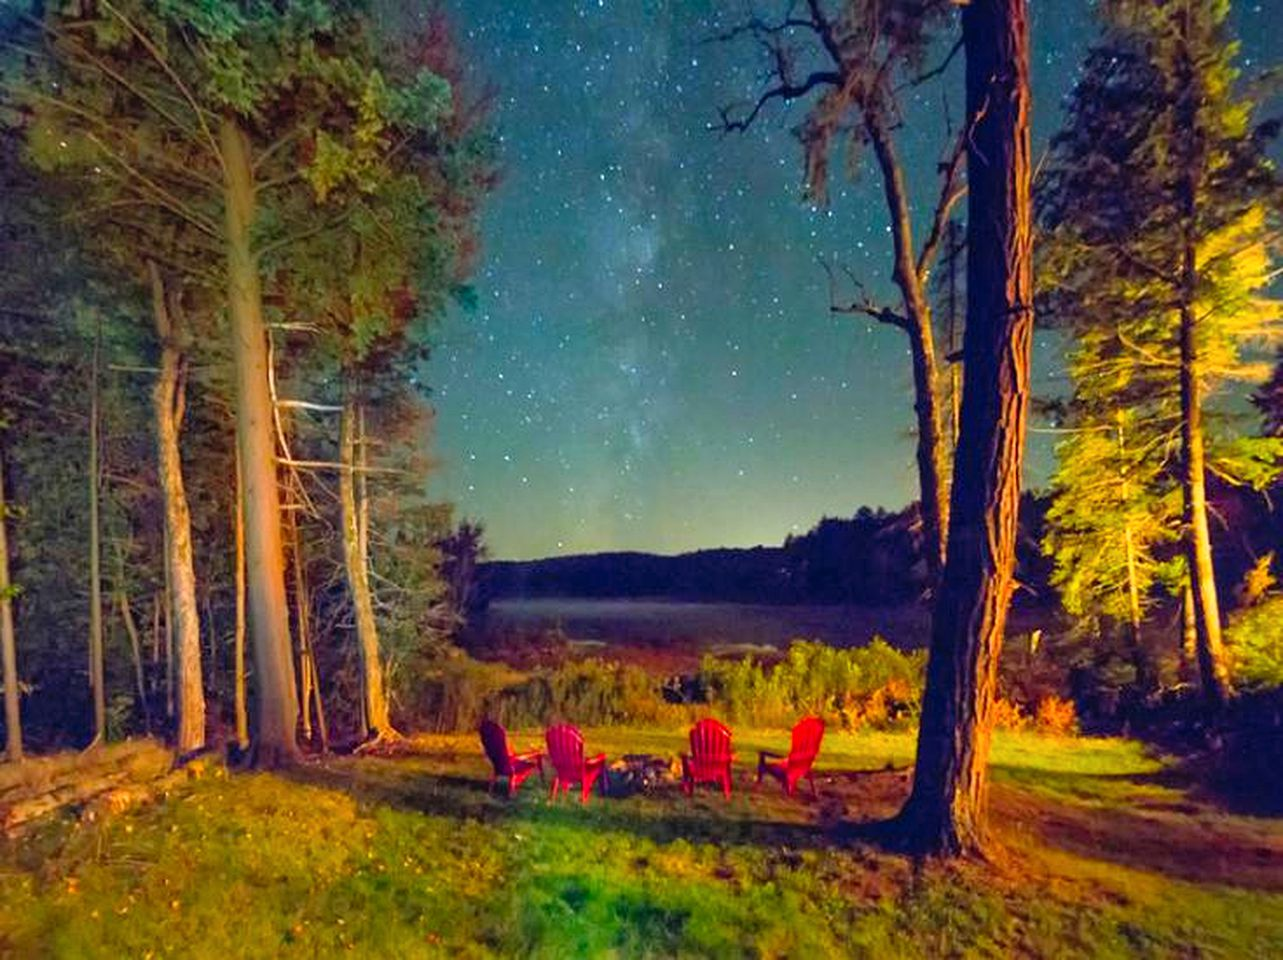 Starry night sky over a Piseco Lake, New York cabin rental.